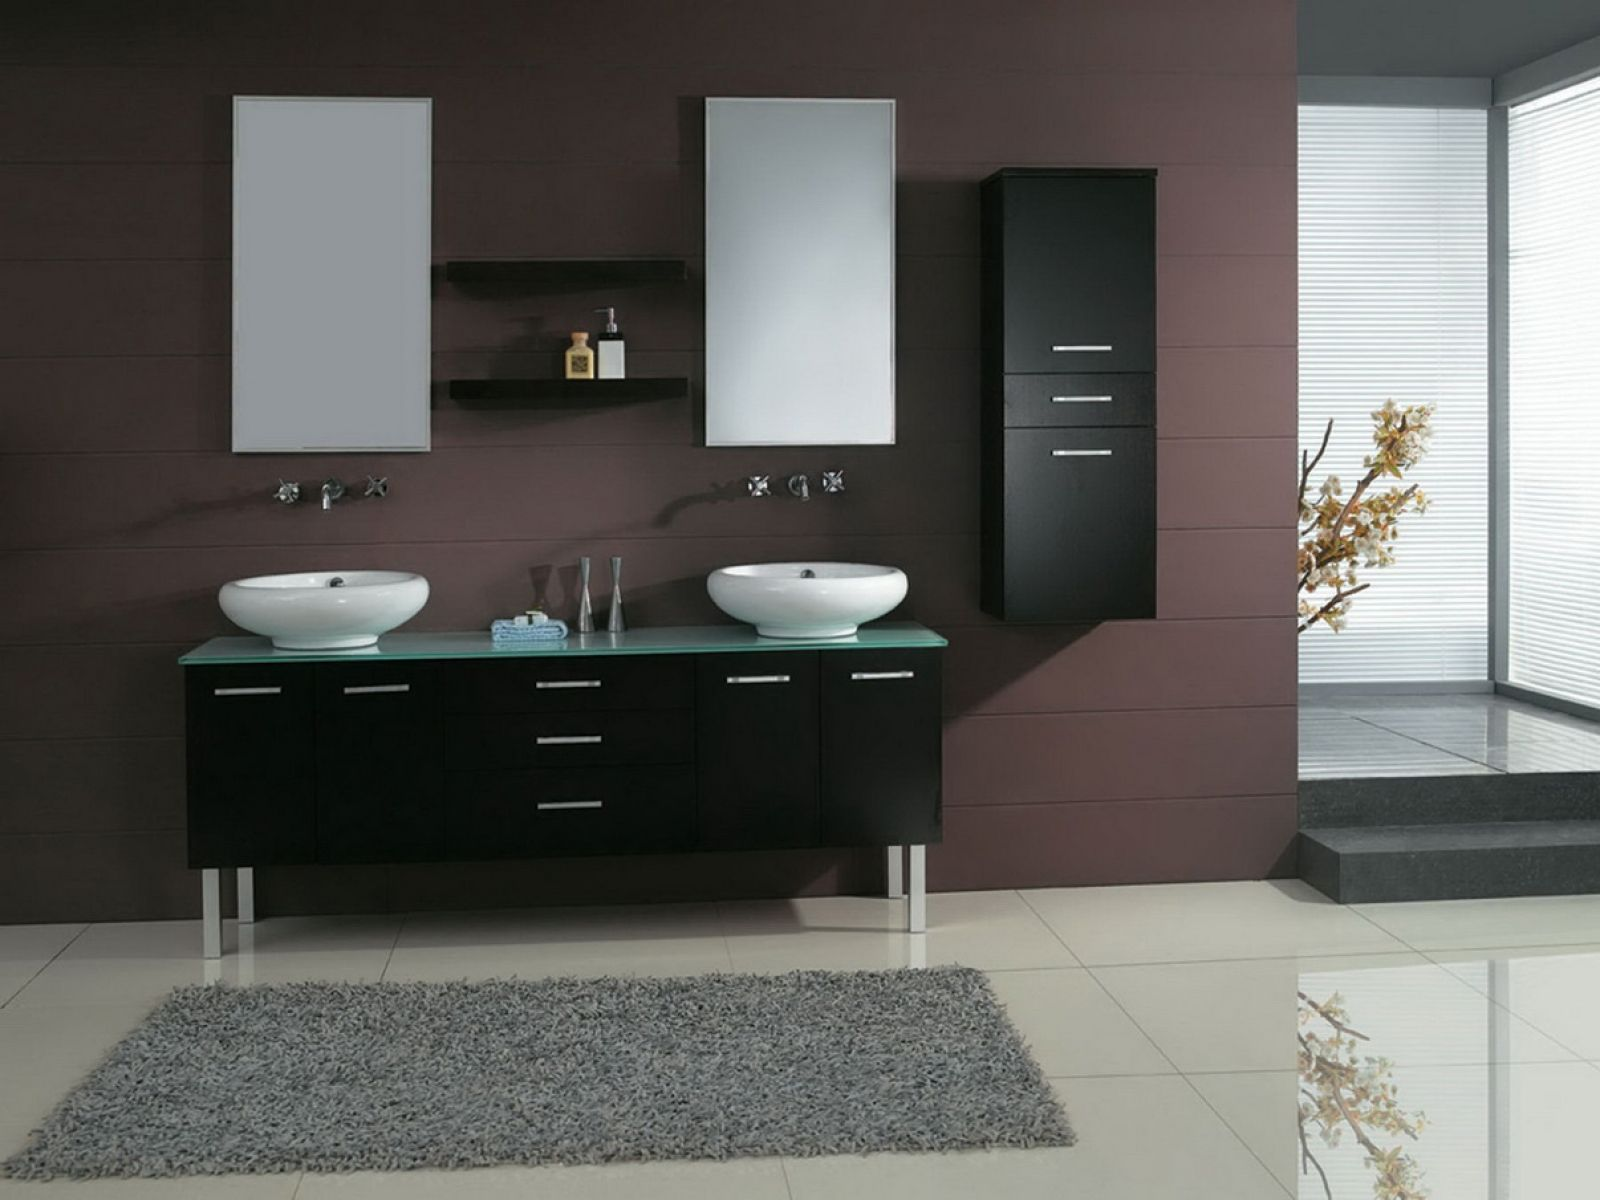 Remarkable Double Bowl Sink Vanities For Bathroom Modern Bathroom